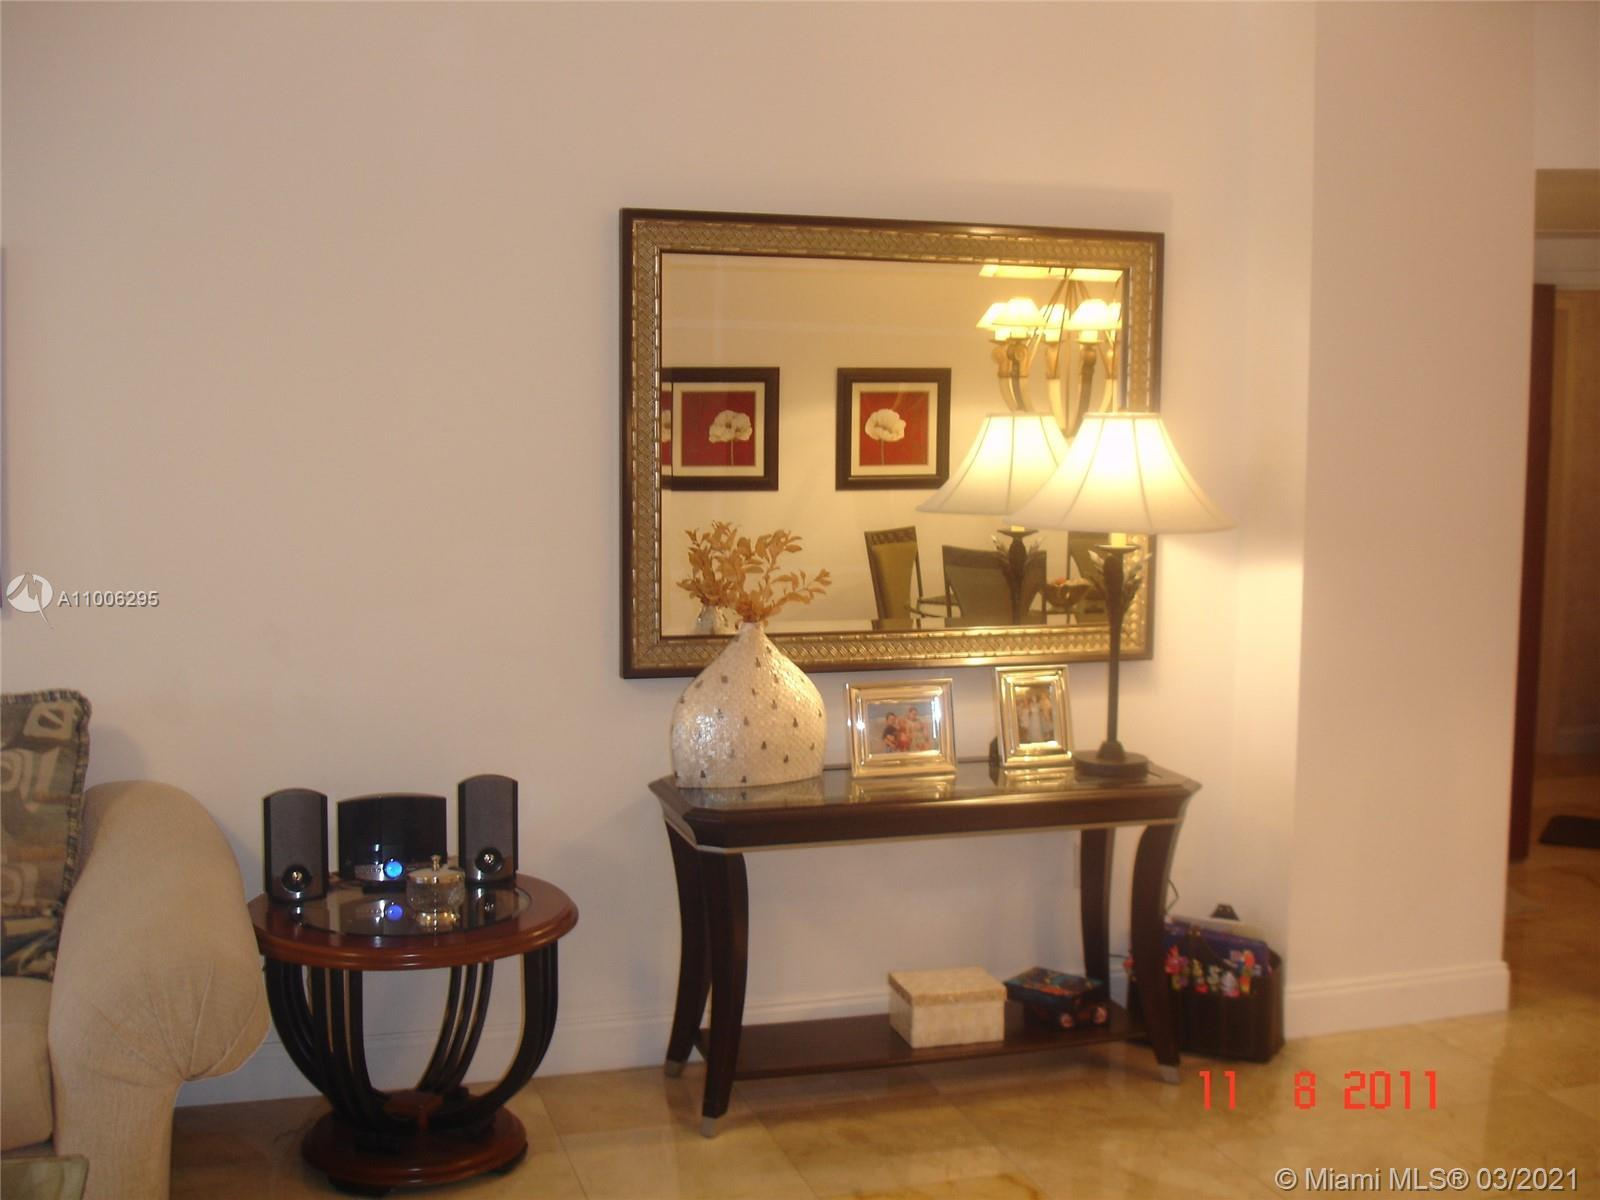 AMAZING OPPORTUNITY TO PURCHASE LOVELY 2 BEDROOM, 2 BATH UNIT IN DIRECT OCEANFRONT SOLIMAR CONDOMINI